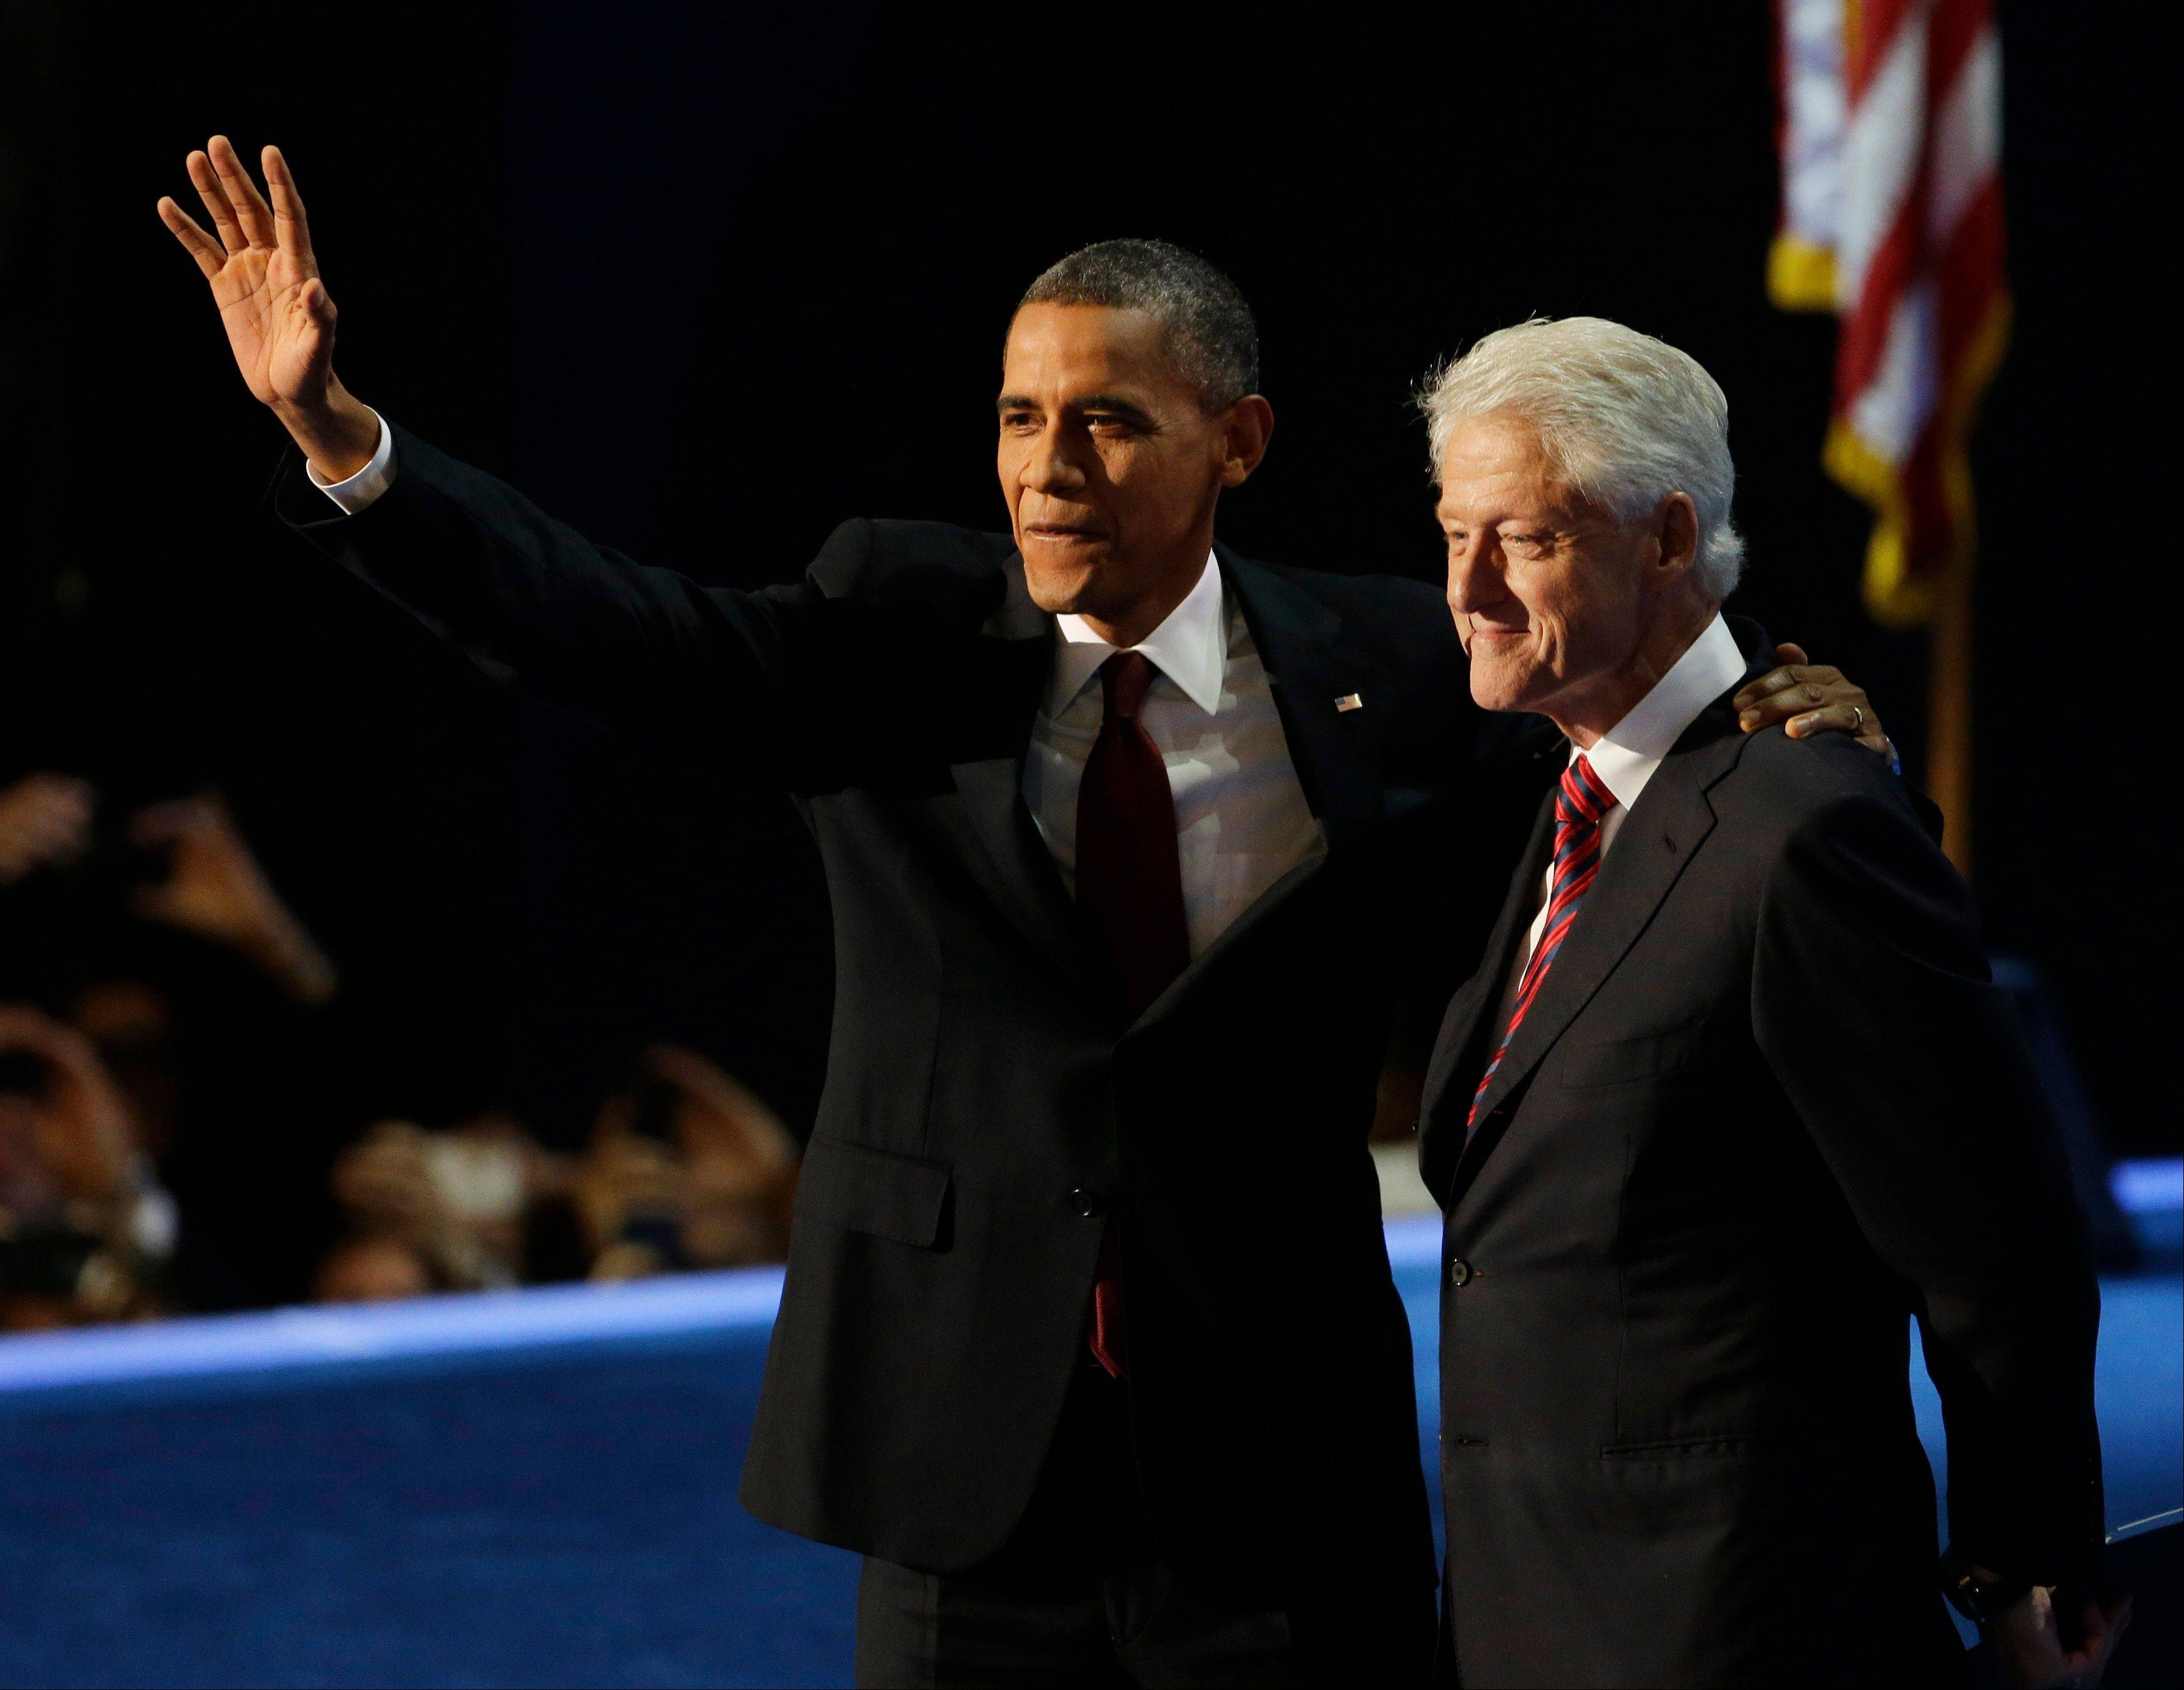 President Barack Obama waves with former President Bill Clinton after Clinton�s speech to the Democratic National Convention in Charlotte, N.C., on Wednesday, Sept. 5, 2012.